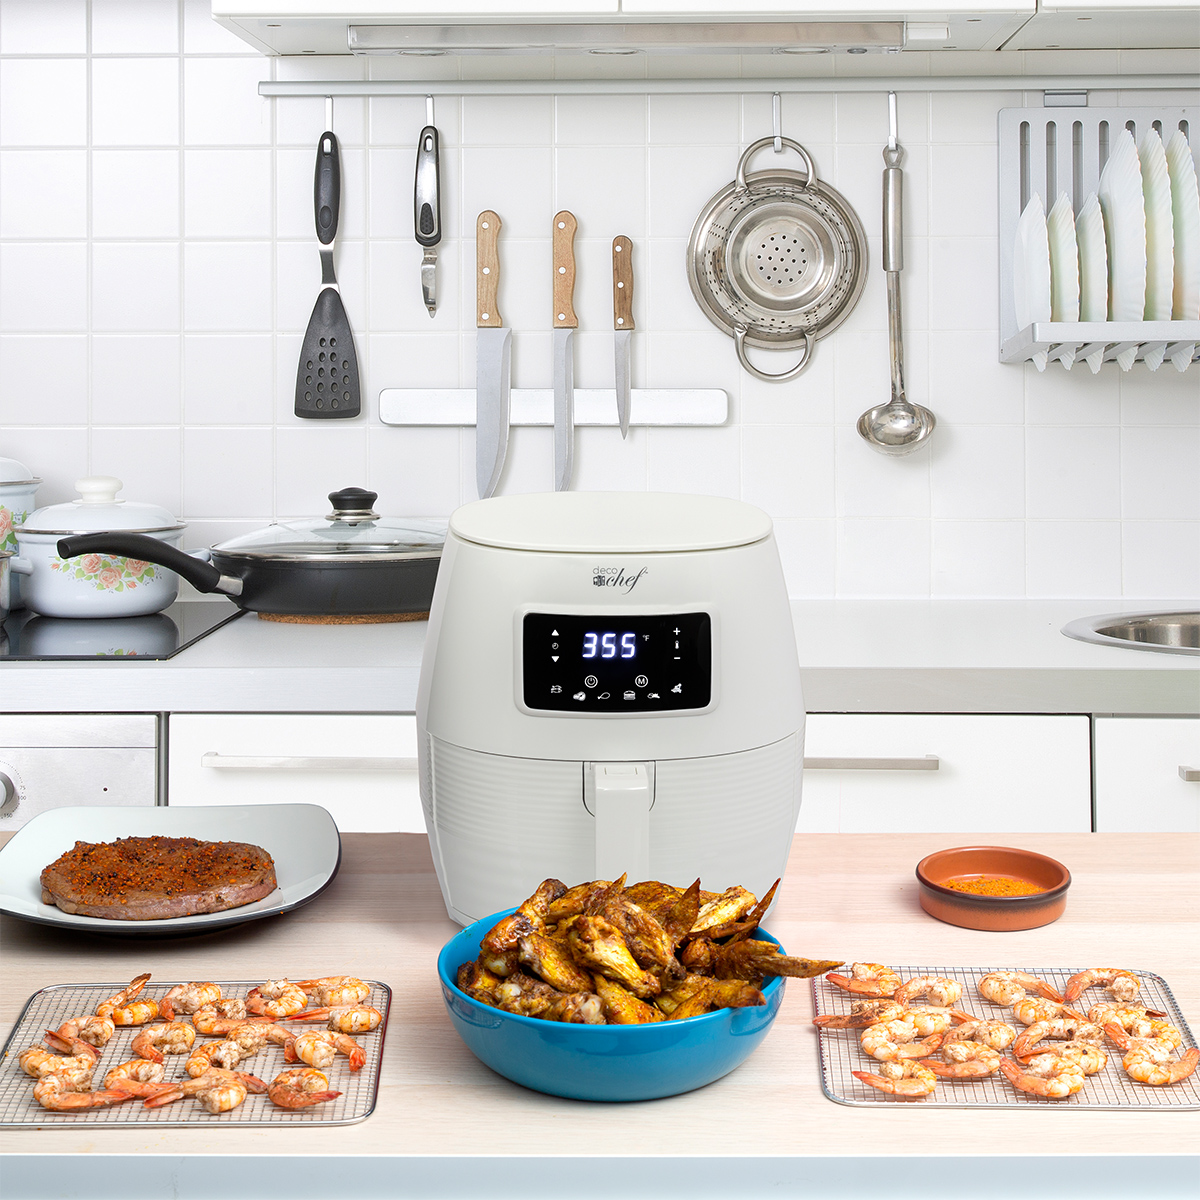 Deco-Chef-5-8QT-1400W-Digital-Electric-No-Oil-Air-Fryer-6-Cooking-Presets-Timer thumbnail 19